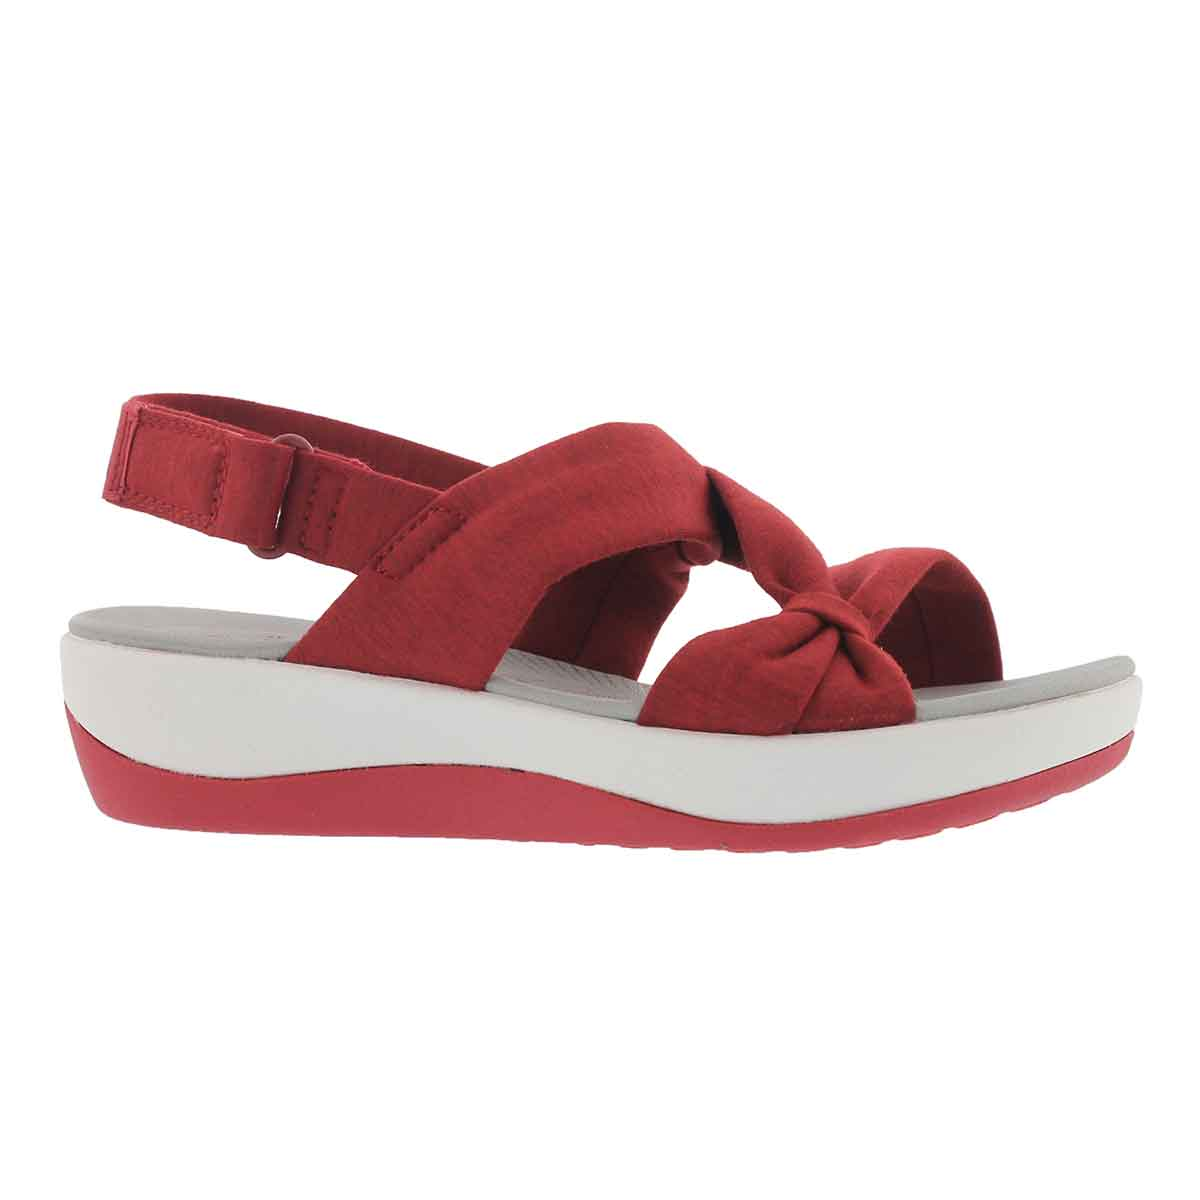 Lds Arla Primrose red wedge sandal